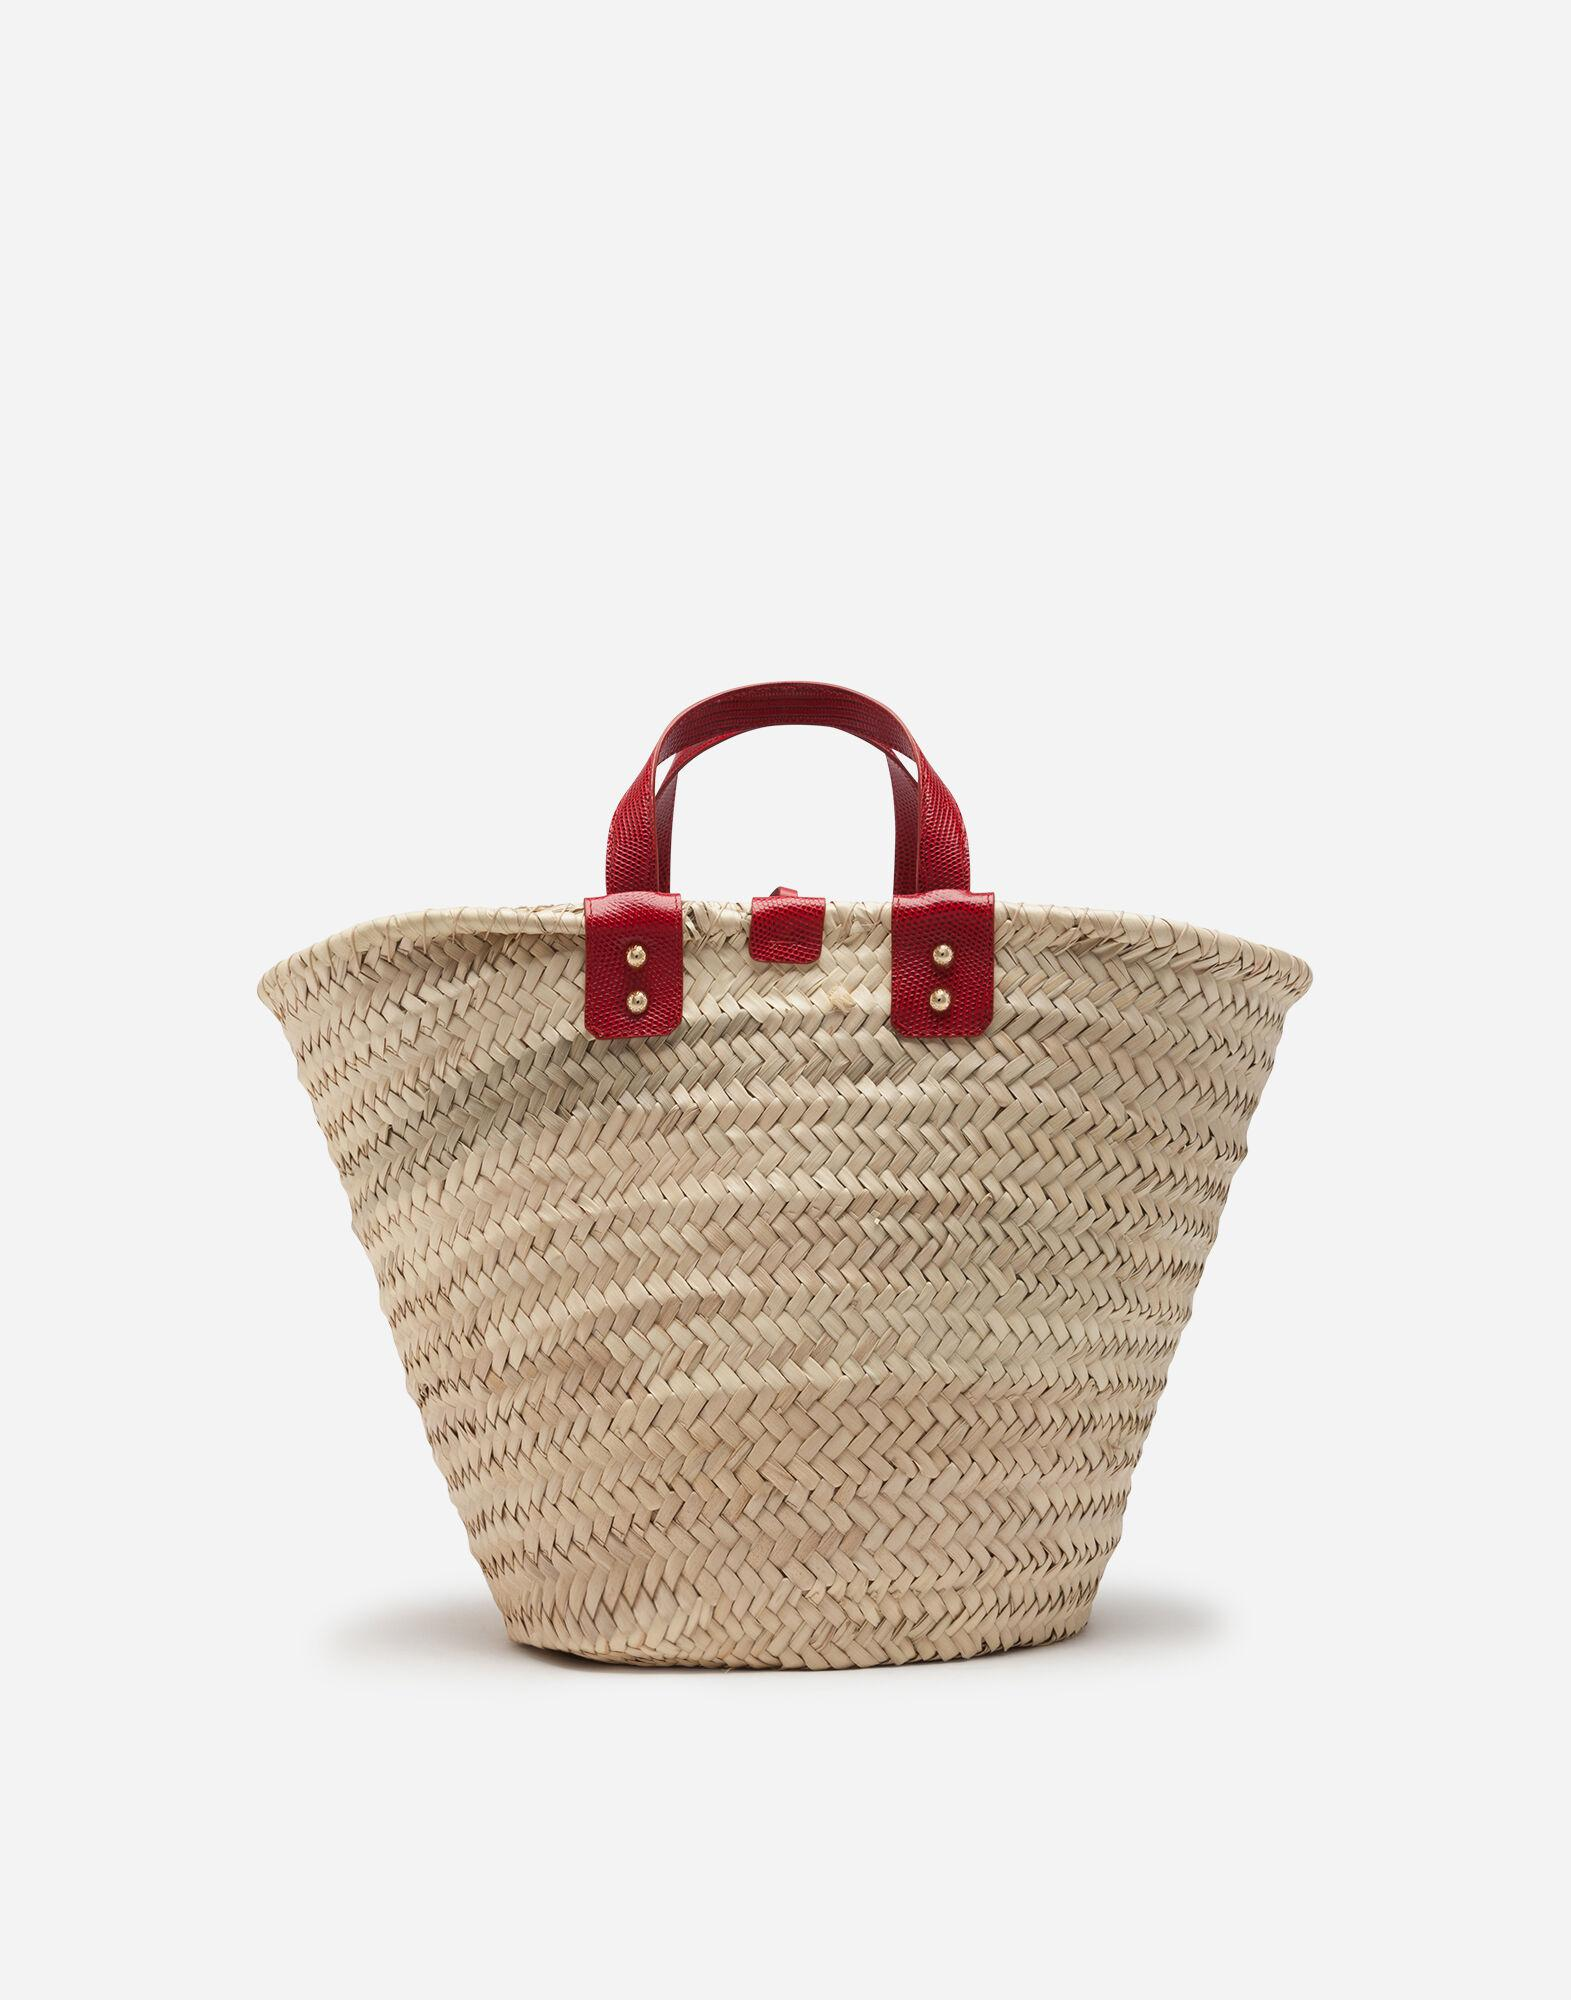 Kendra coffa bag in straw with thread embroidery 2